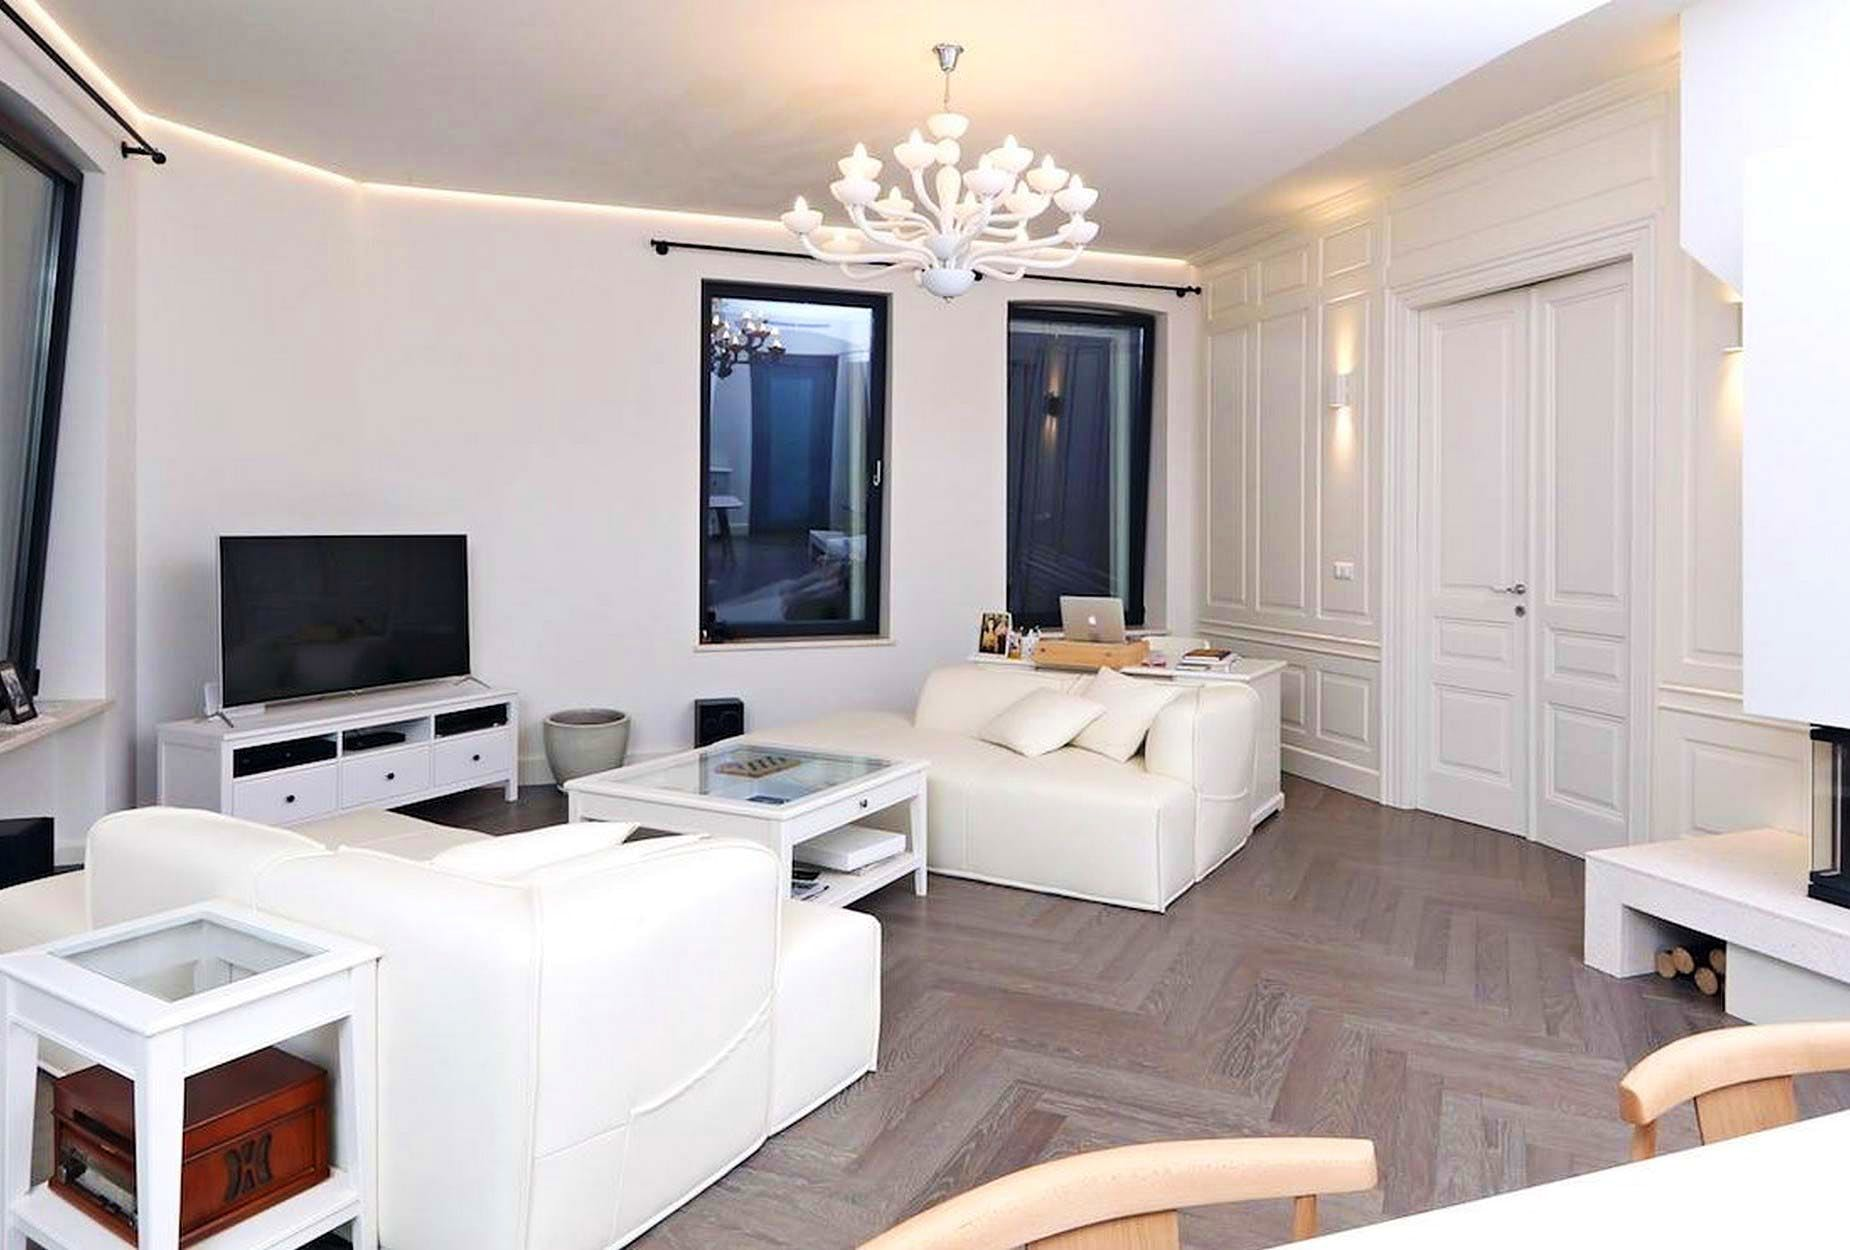 Living space dominated by white color